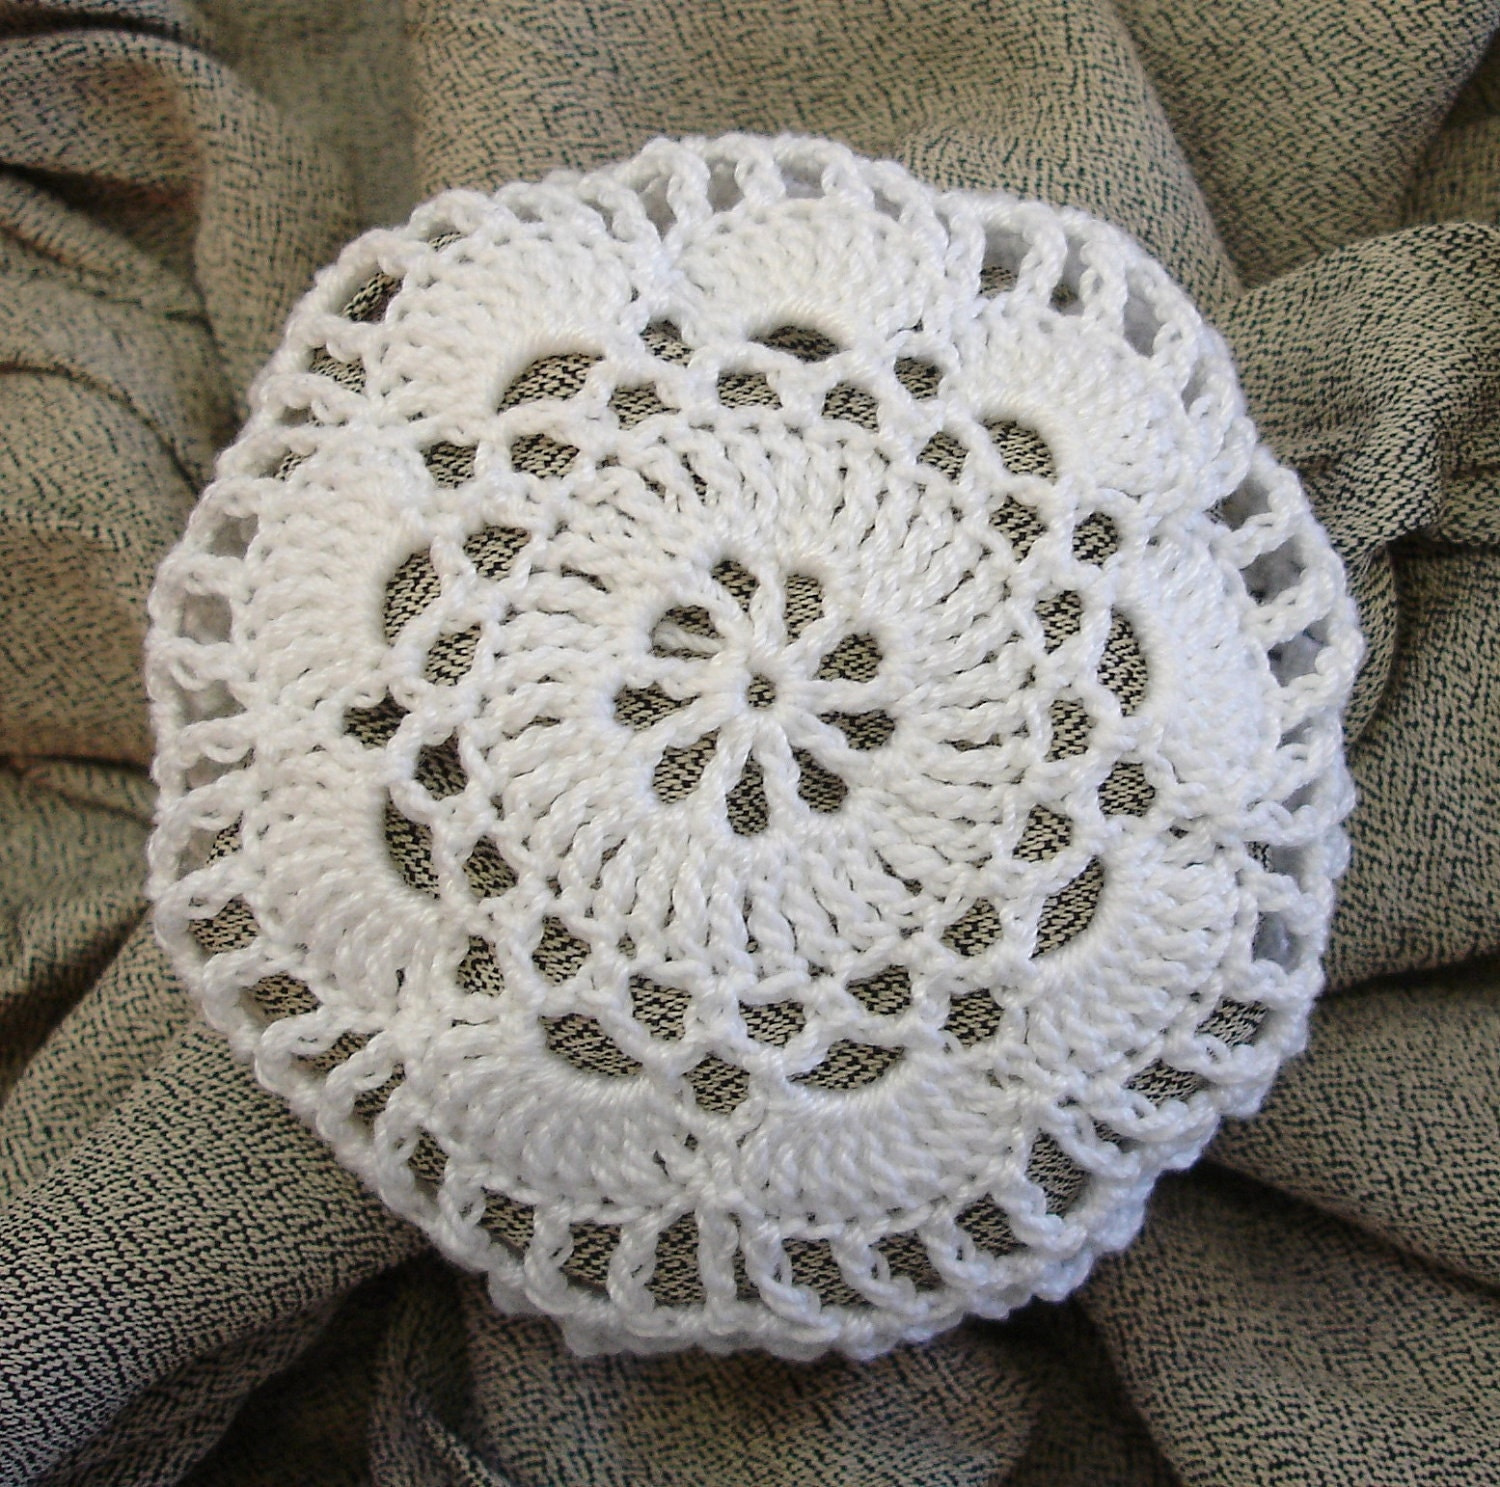 Crochet Hair Cover : Hair Net / Bun Cover Crocheted White Flower Style by mydesertdeals